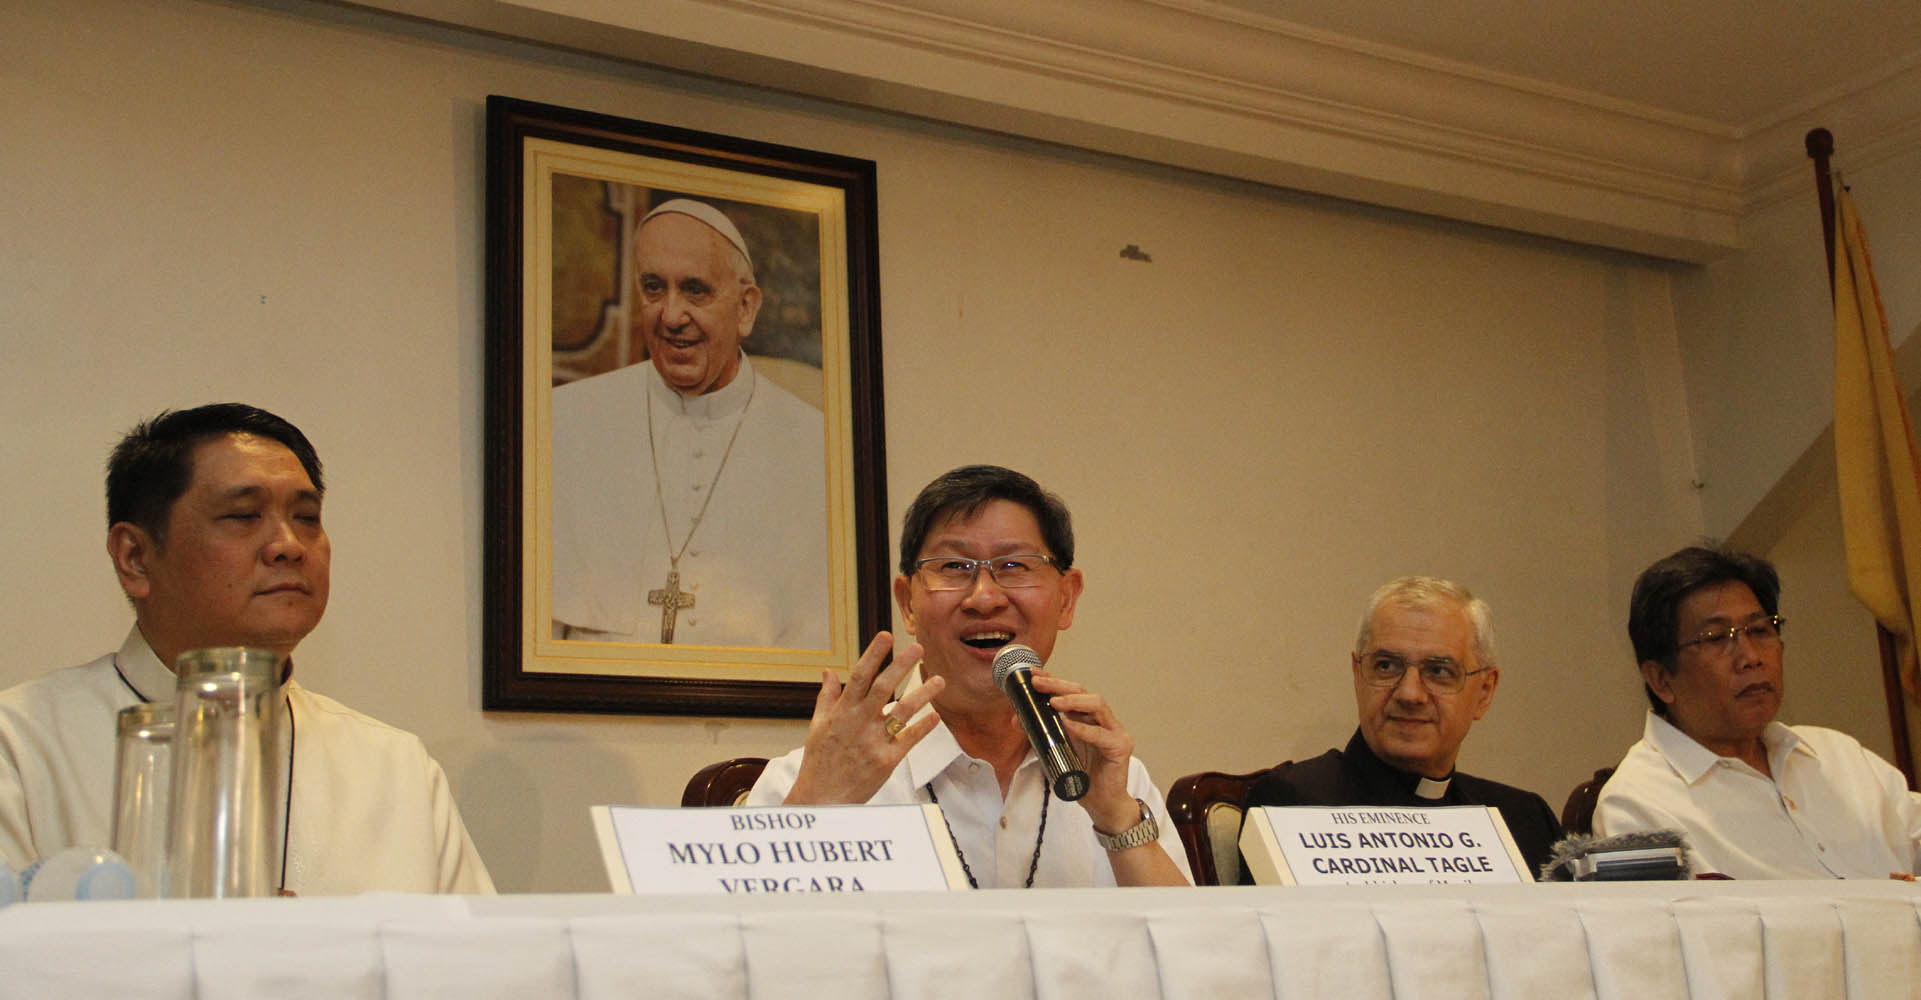 Manila Archbishop Antonio Luis G. Tagle announces the visit of Pope Francis to the Philippines on January 15-19 next year during a press conference on Tuesday (July 29, 2014) in Intramuros, Manila. Also in photo (from left) are Bishop Mylo Hubert Vergara; Apostolic Nuncio, Archbishop Giuseppe Pinto; and Presidential Communication and Operations Office (PCOO) Secretary Herminio Coloma. (PNA photo by Avito C.Dalan)